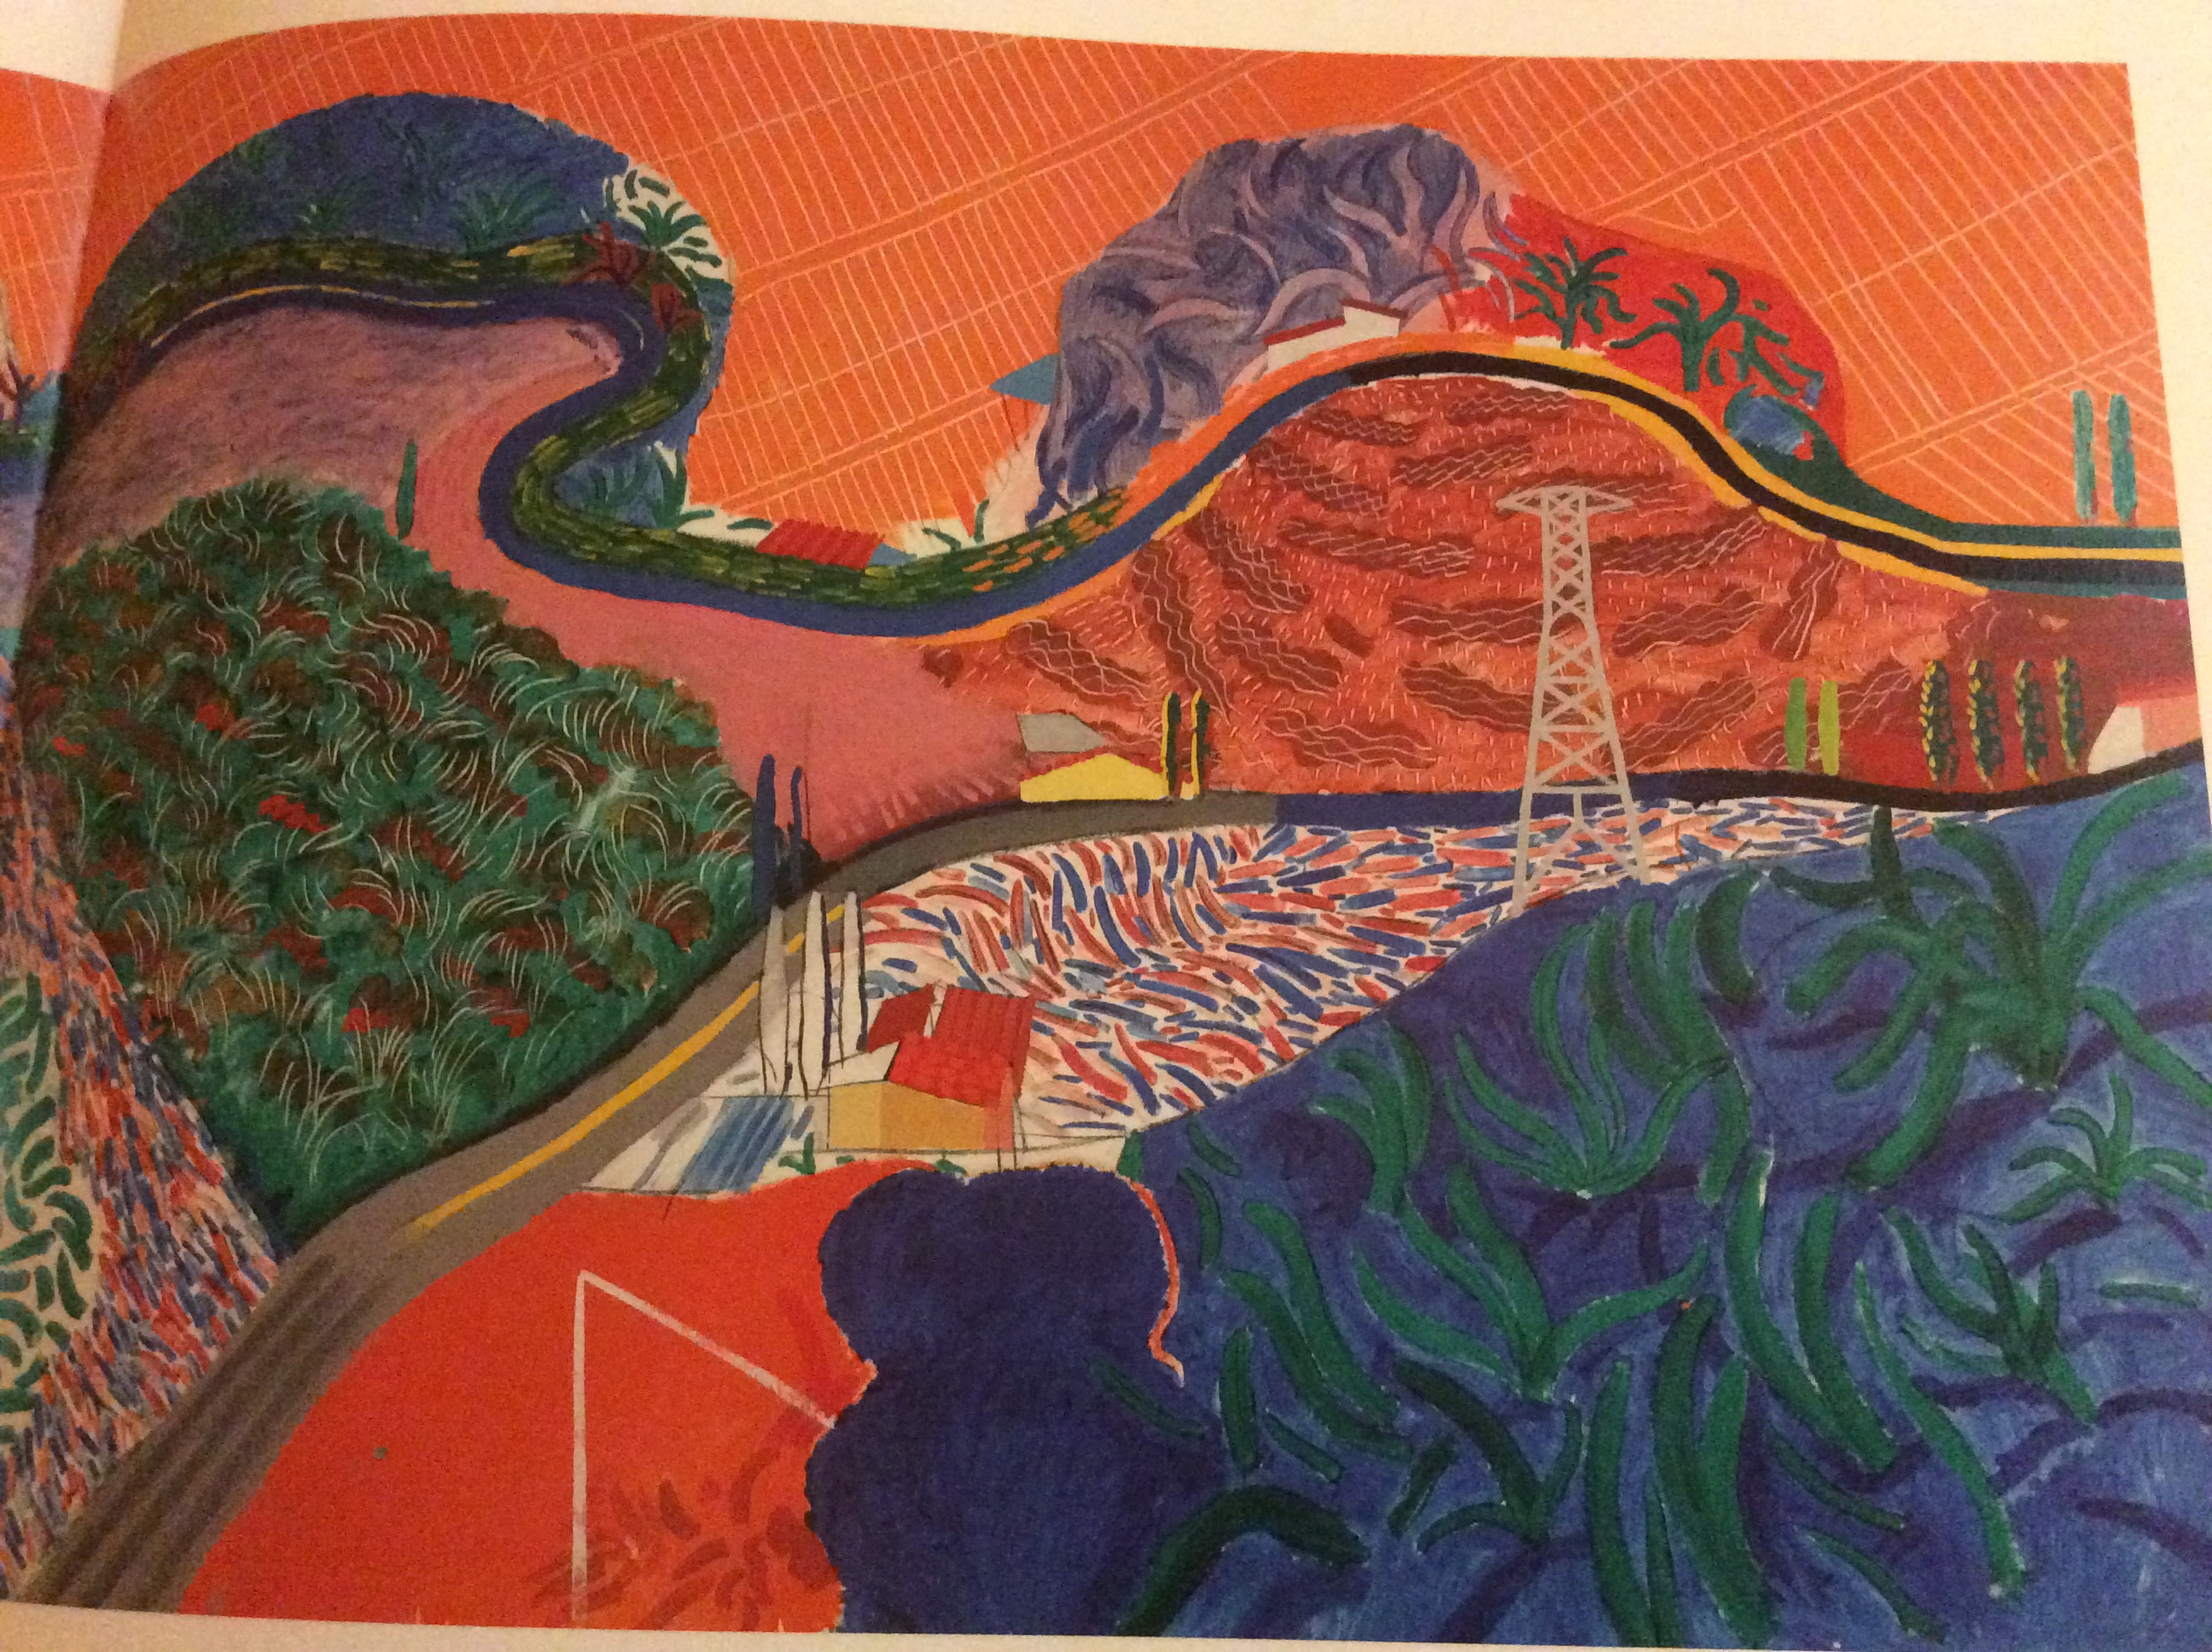 David Hockney's painting of Mulholland Drive California